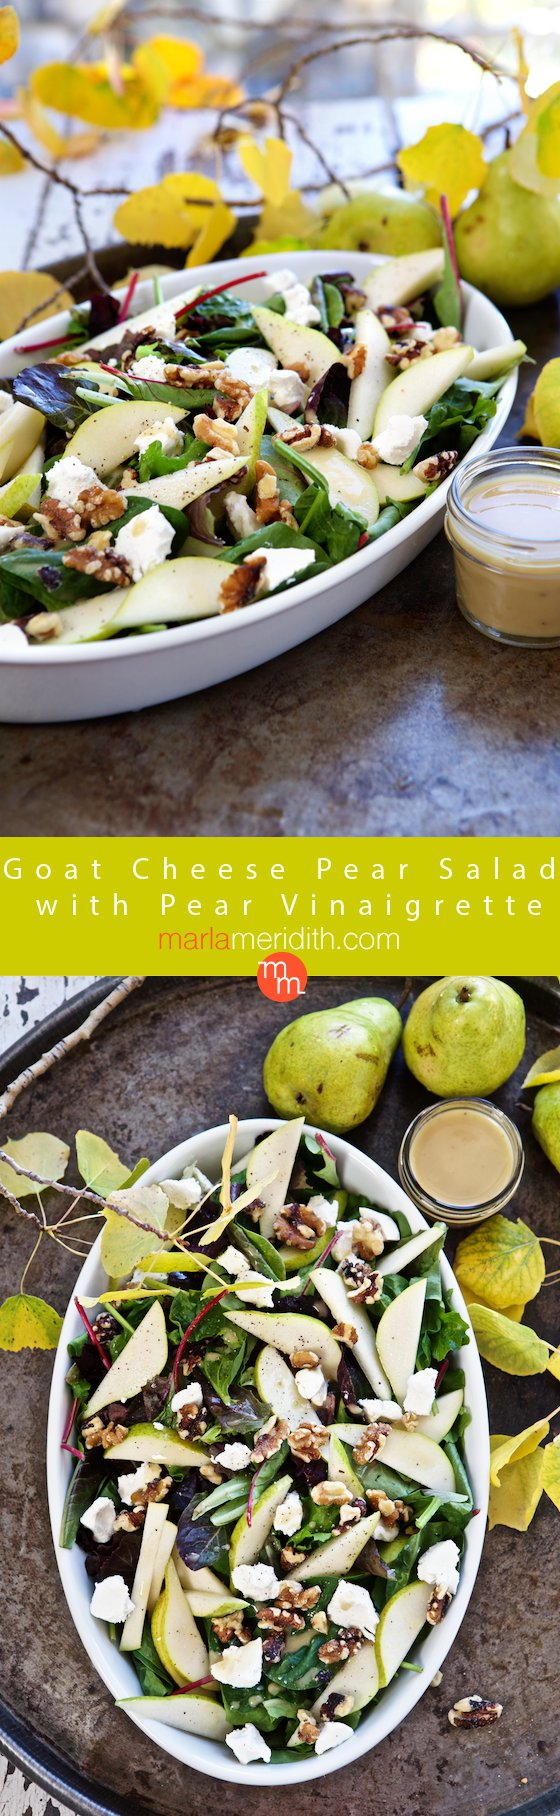 Goat Cheese Pear Salad with Pear Vinaigrette, this recipe is a delicious side dish for Thanksgiving & Christmas. MarlaMeridith.com ( @marlameridith )